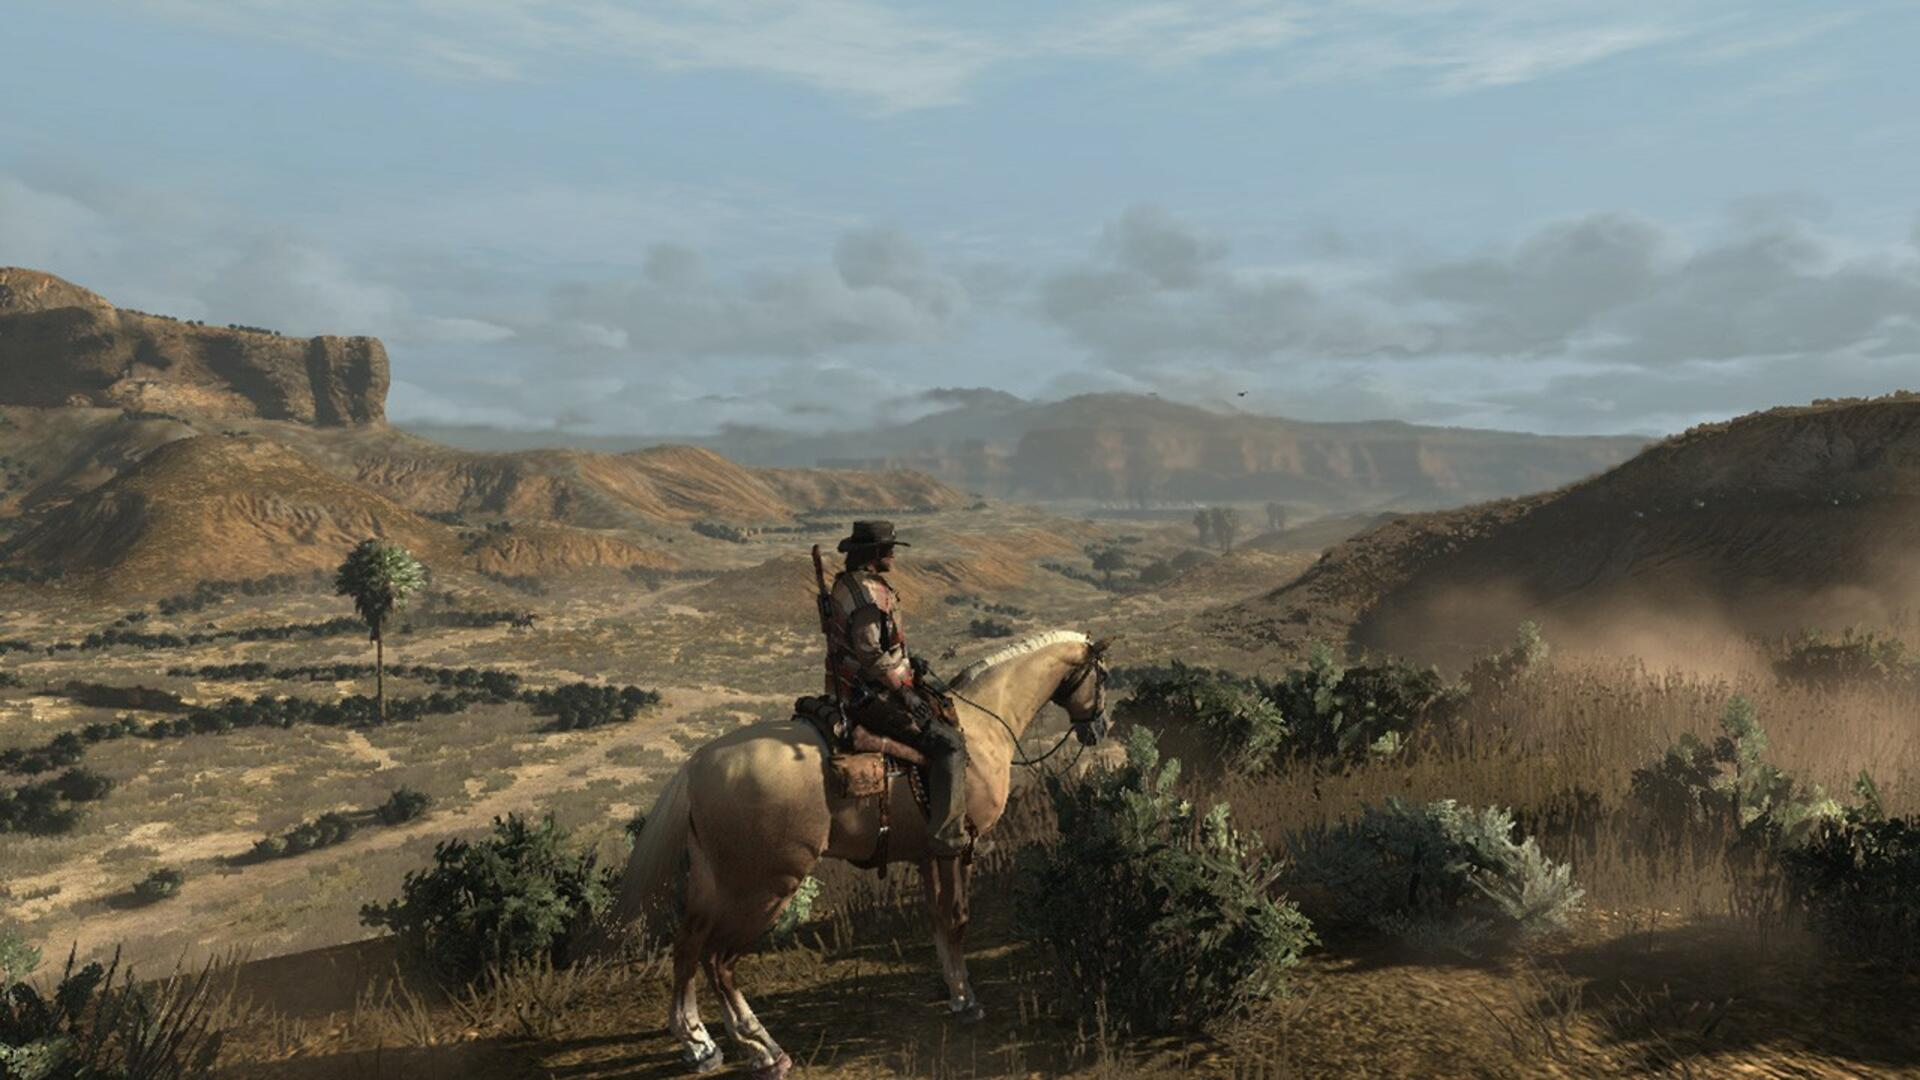 Red Dead Redemption Cheats - Free Money, Multiplayer Cheat, Outfits, Get Weapons, Infinite Ammo - Xbox One, PS3, Xbox 360